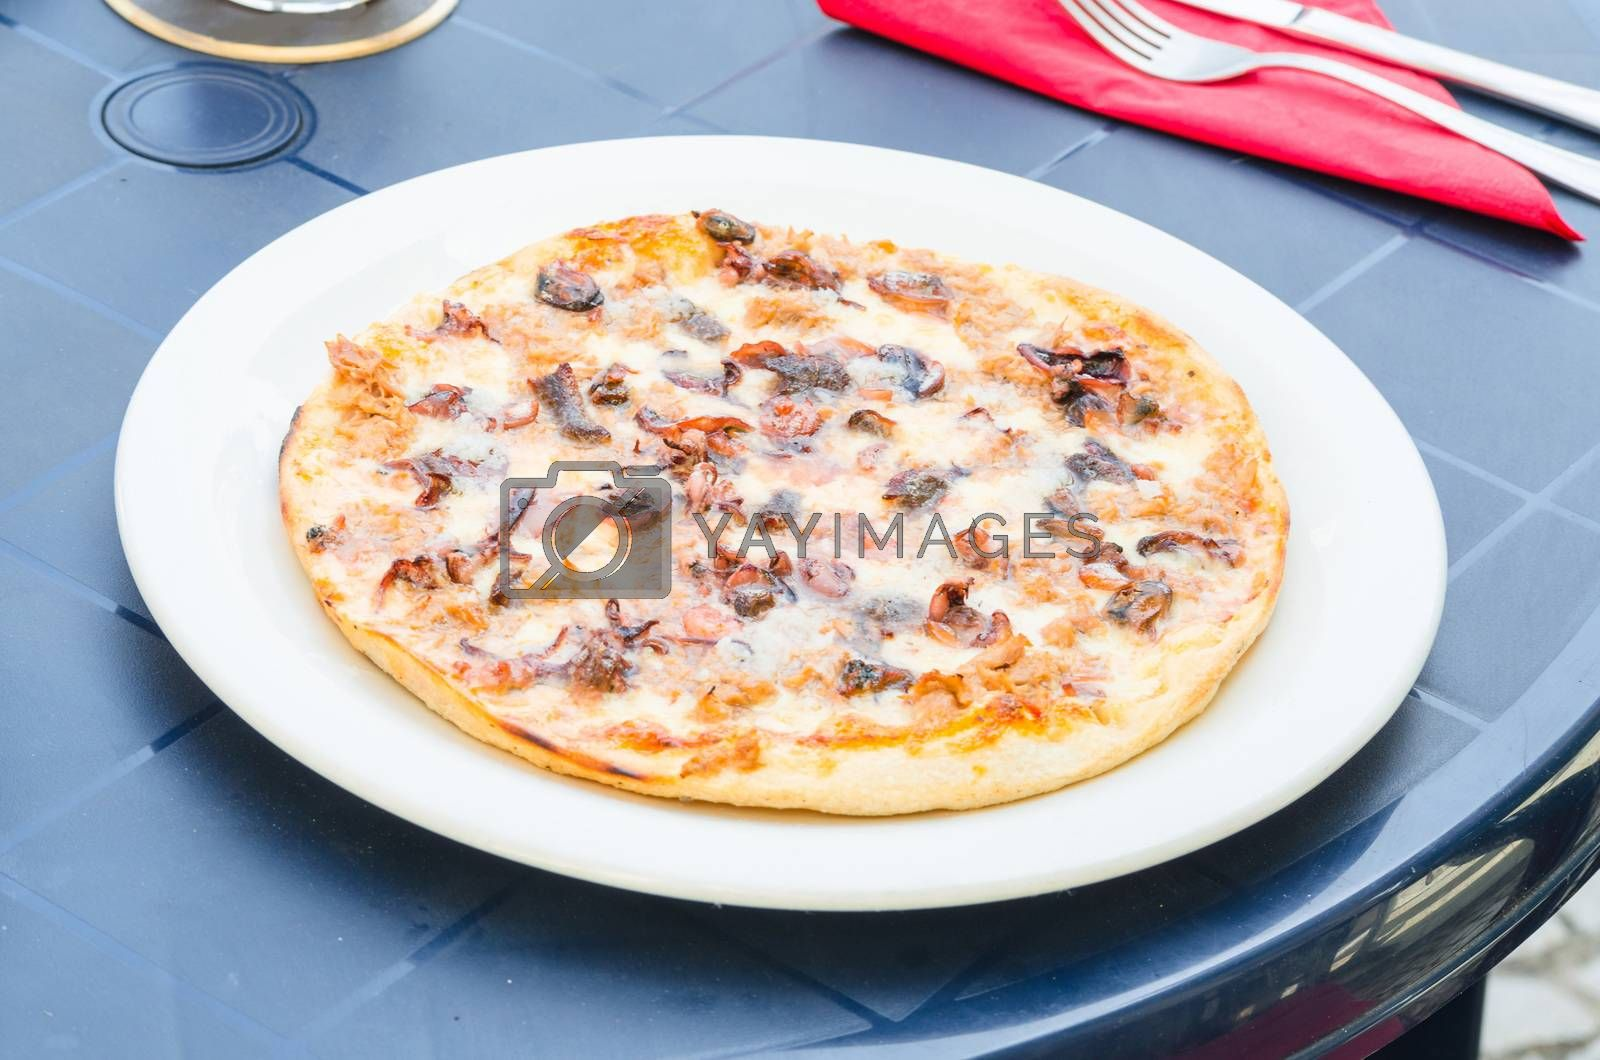 Royalty free image of Pizza Frutti di mare             by JFsPic